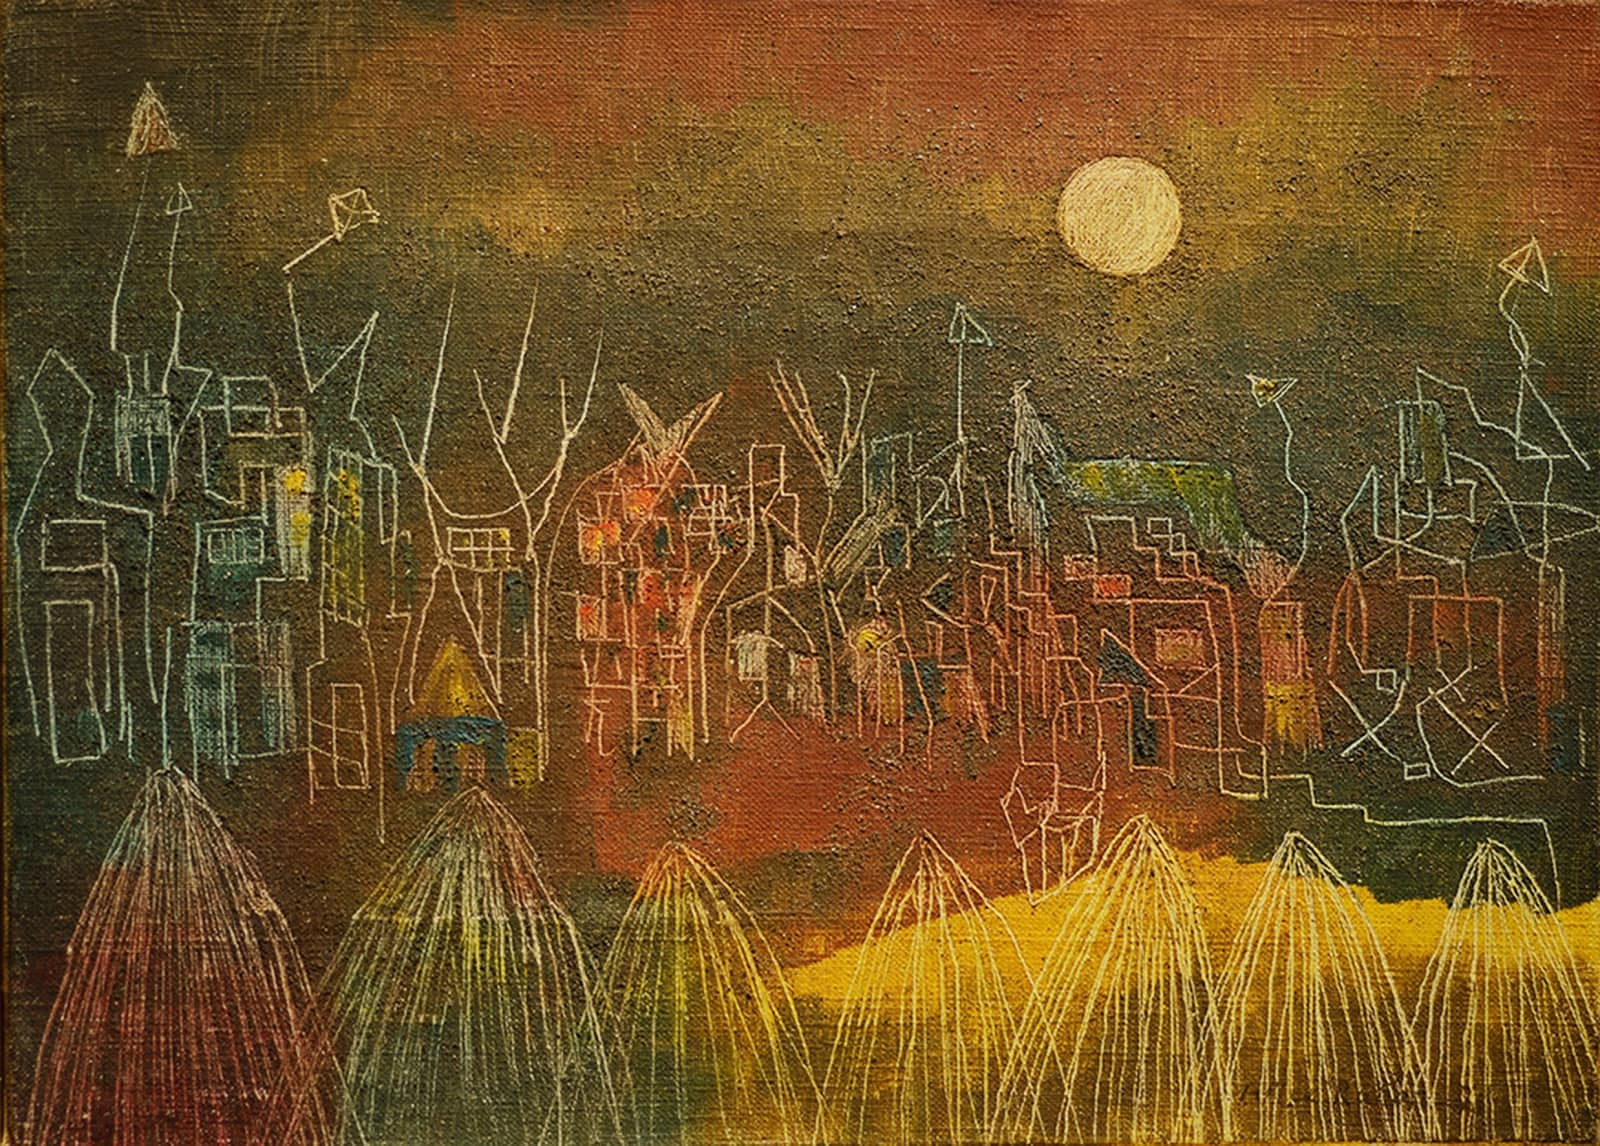 Village Abandoned to the Ghosts, 1948 by Alice Rahon